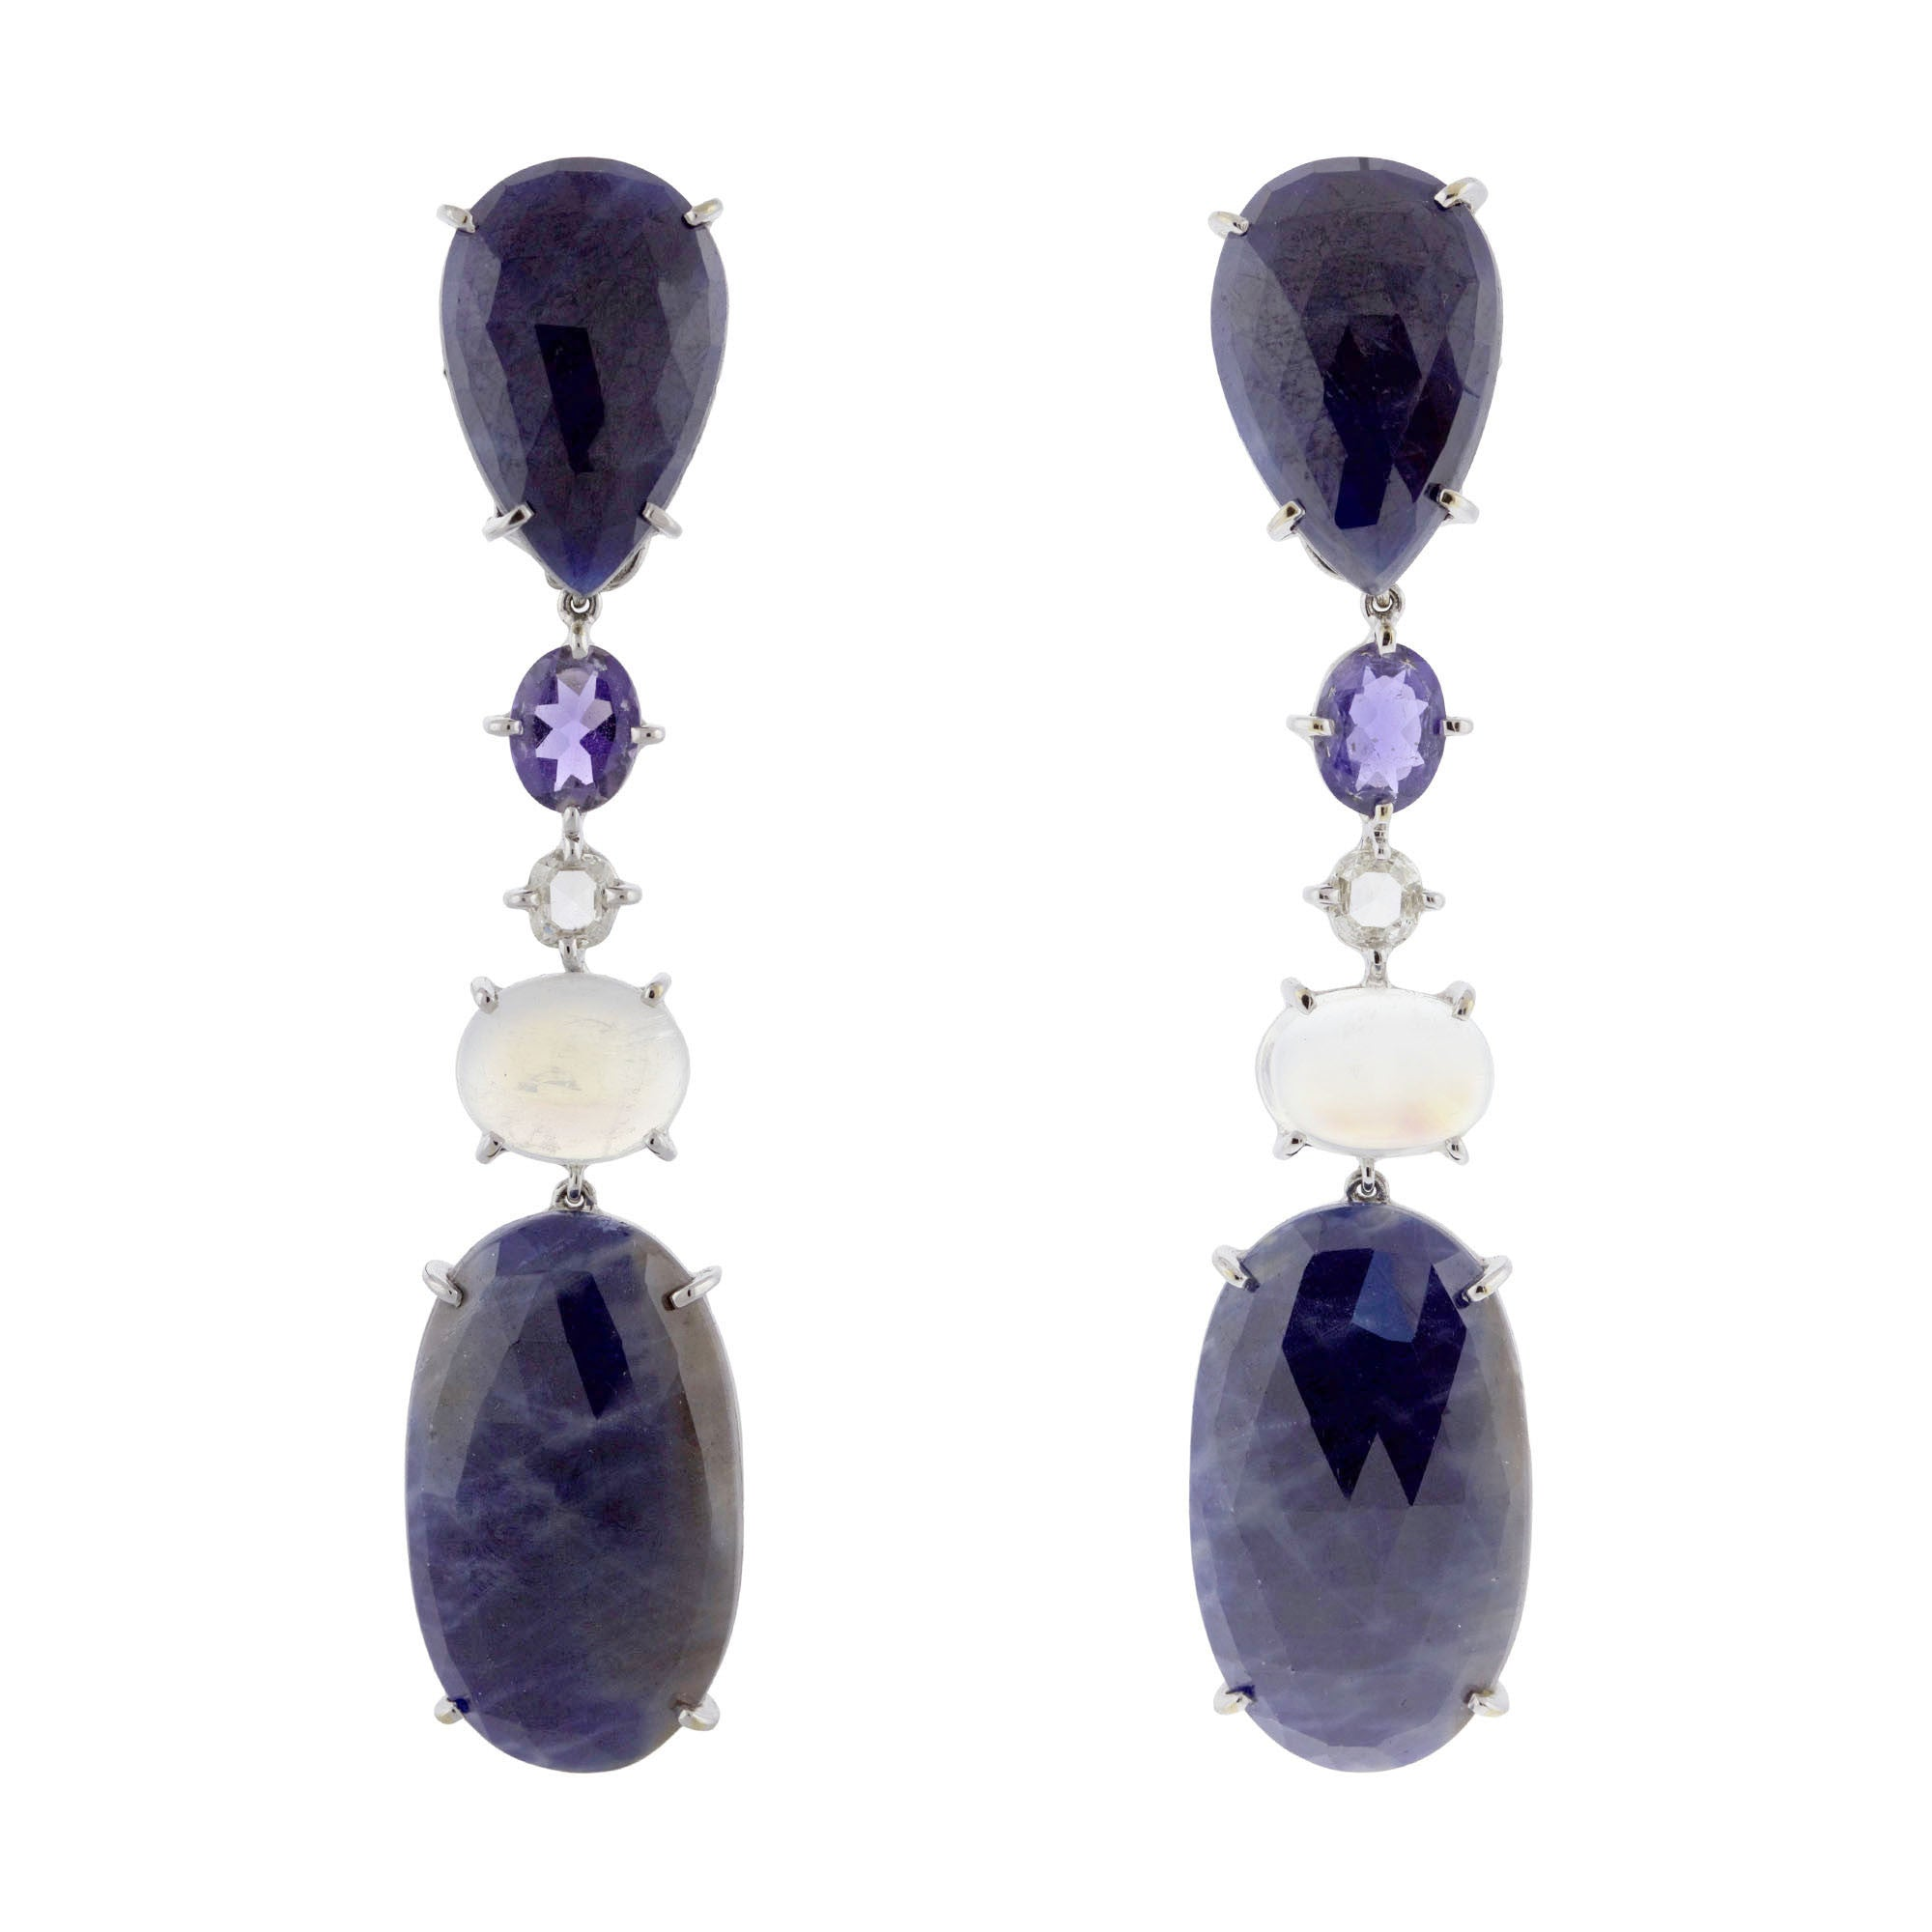 BOLLYWOOD V sapphire earrings